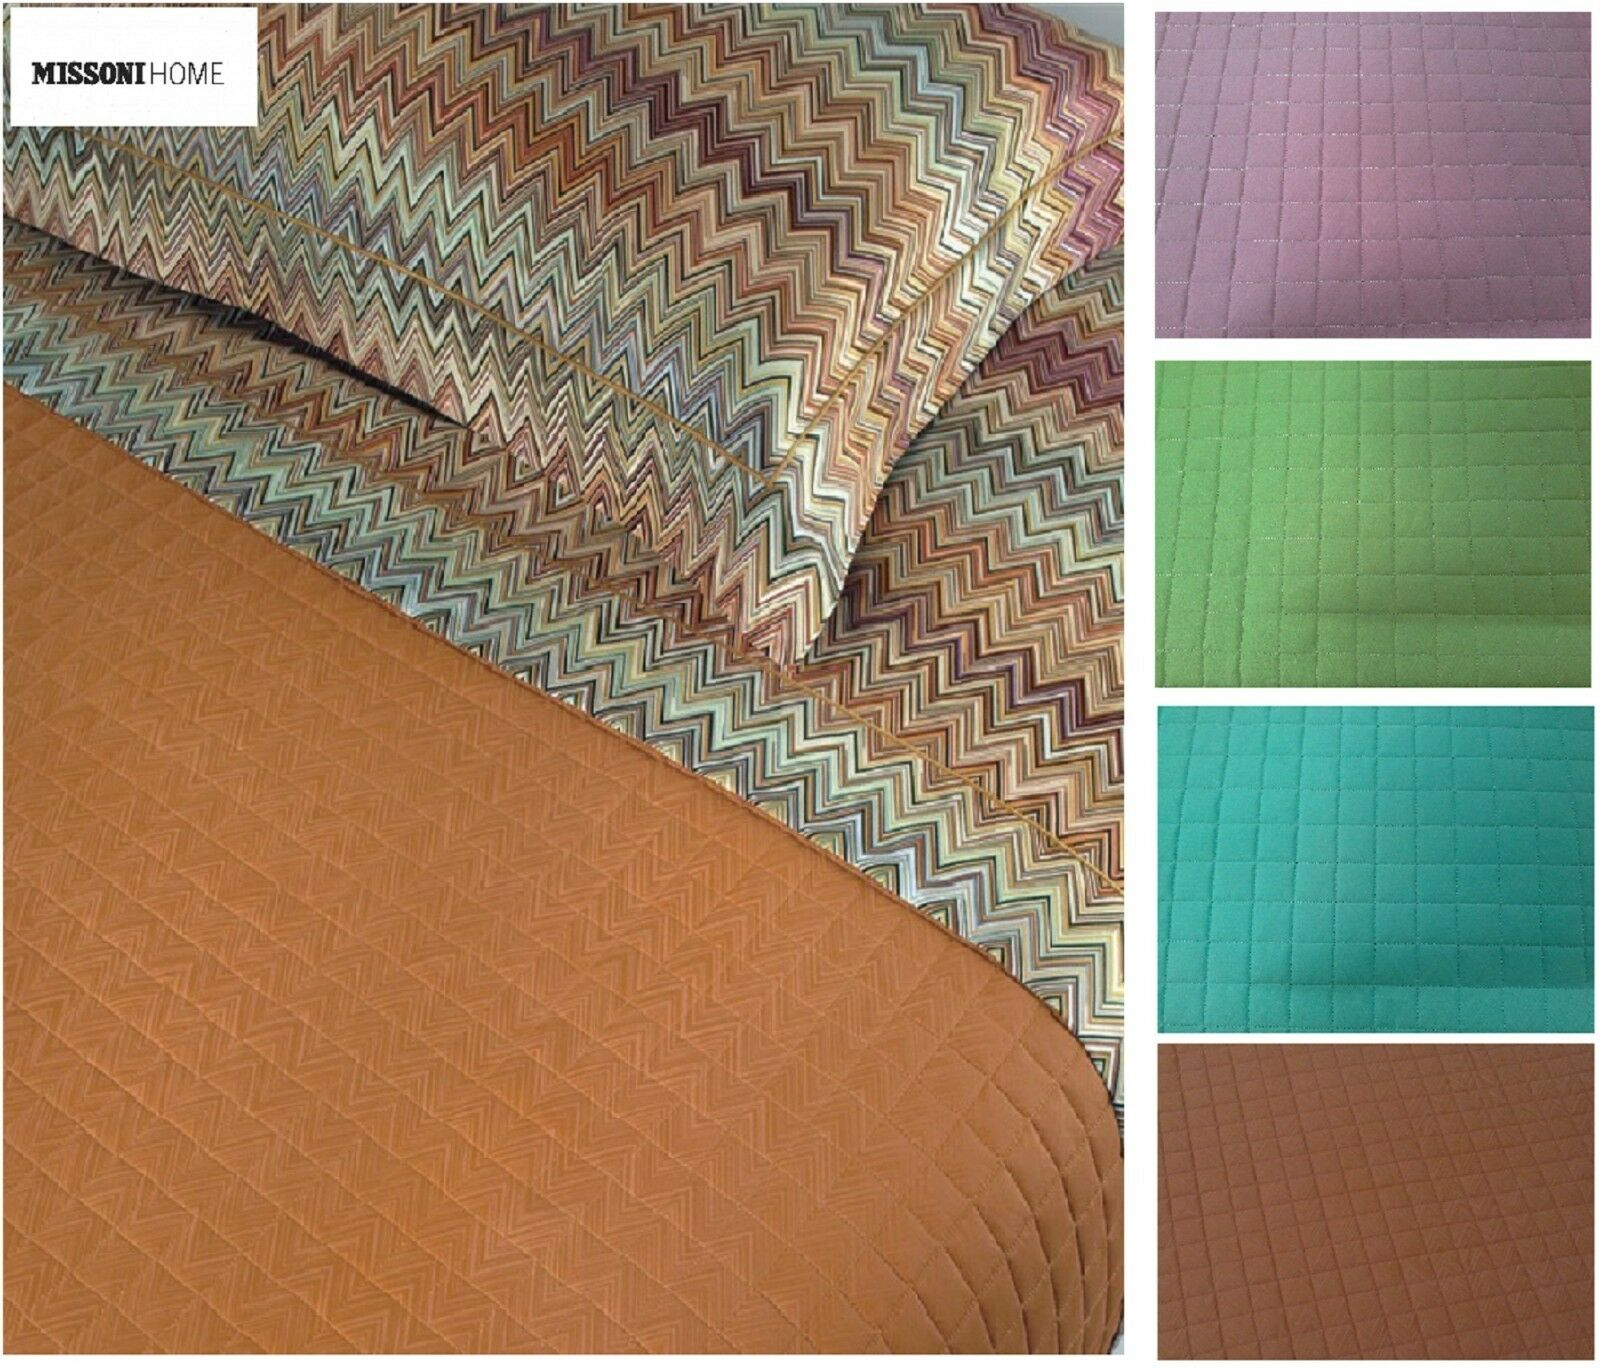 Quilted Bedspread - Quilt, Quilt. MISSONI HOME - JO. Double